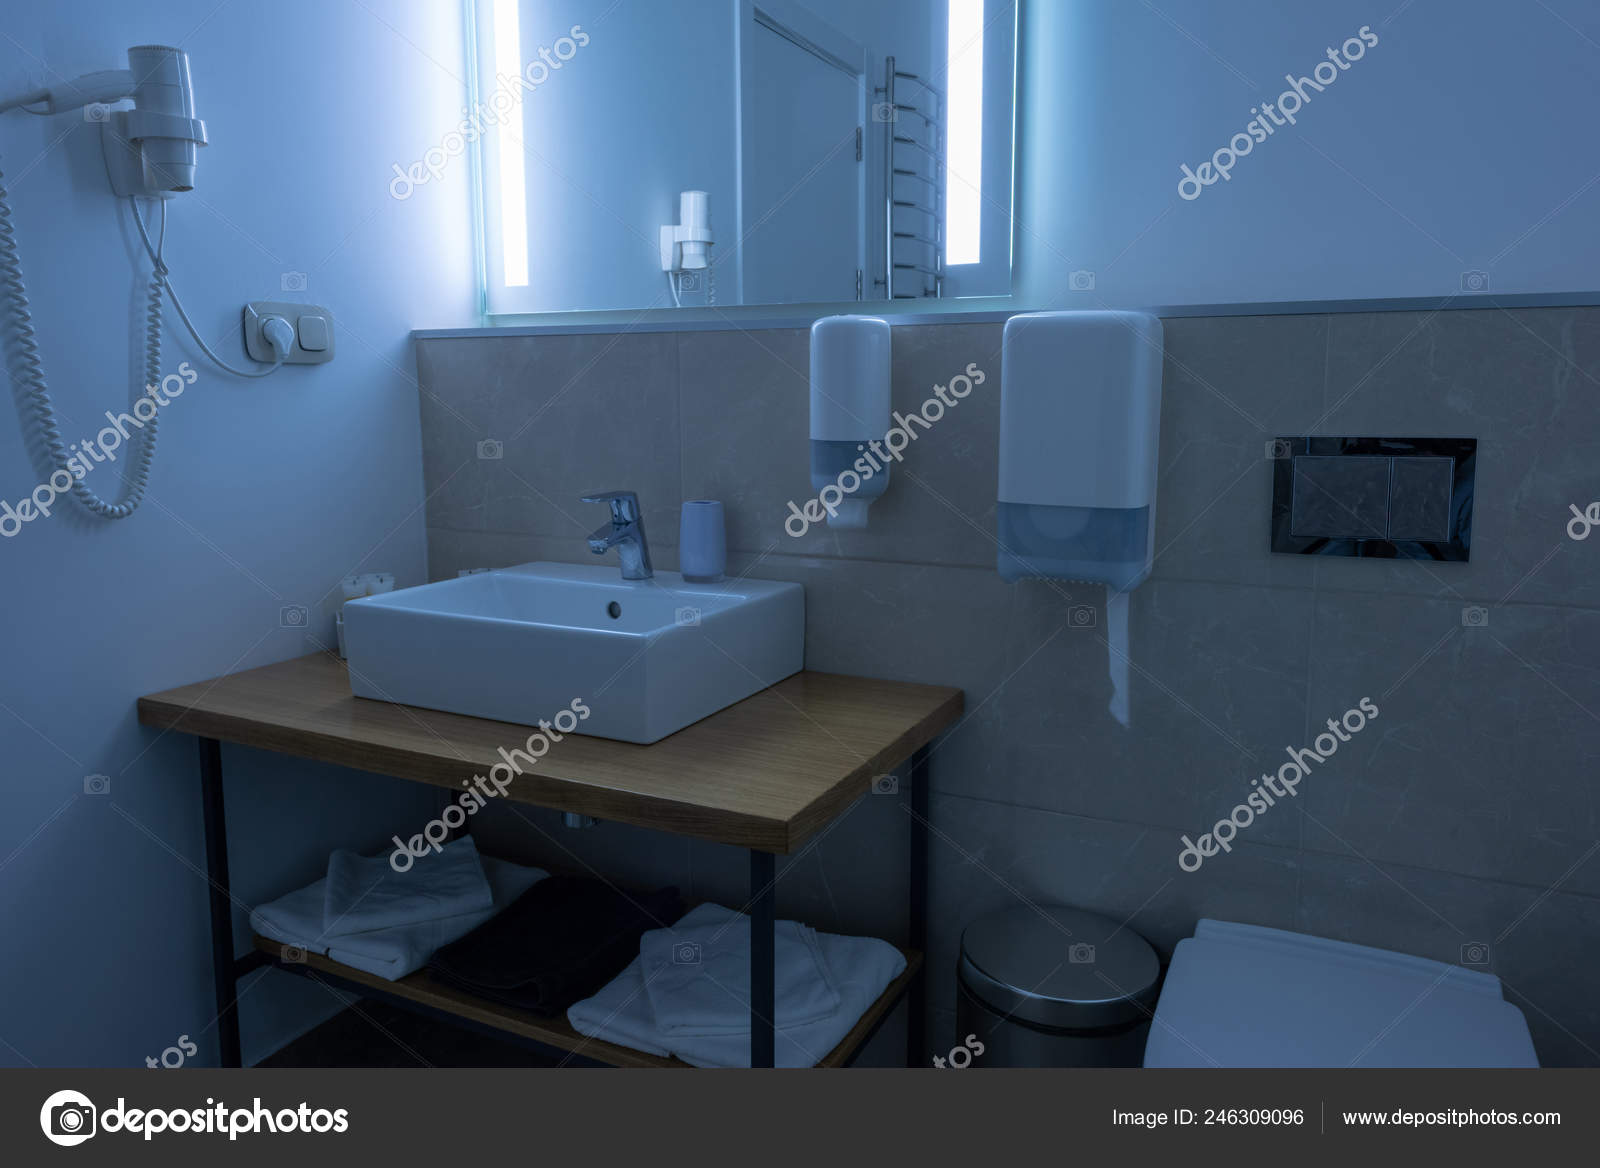 Bathroom Washstand Toilet Towels Hair Dryer Stock Photo